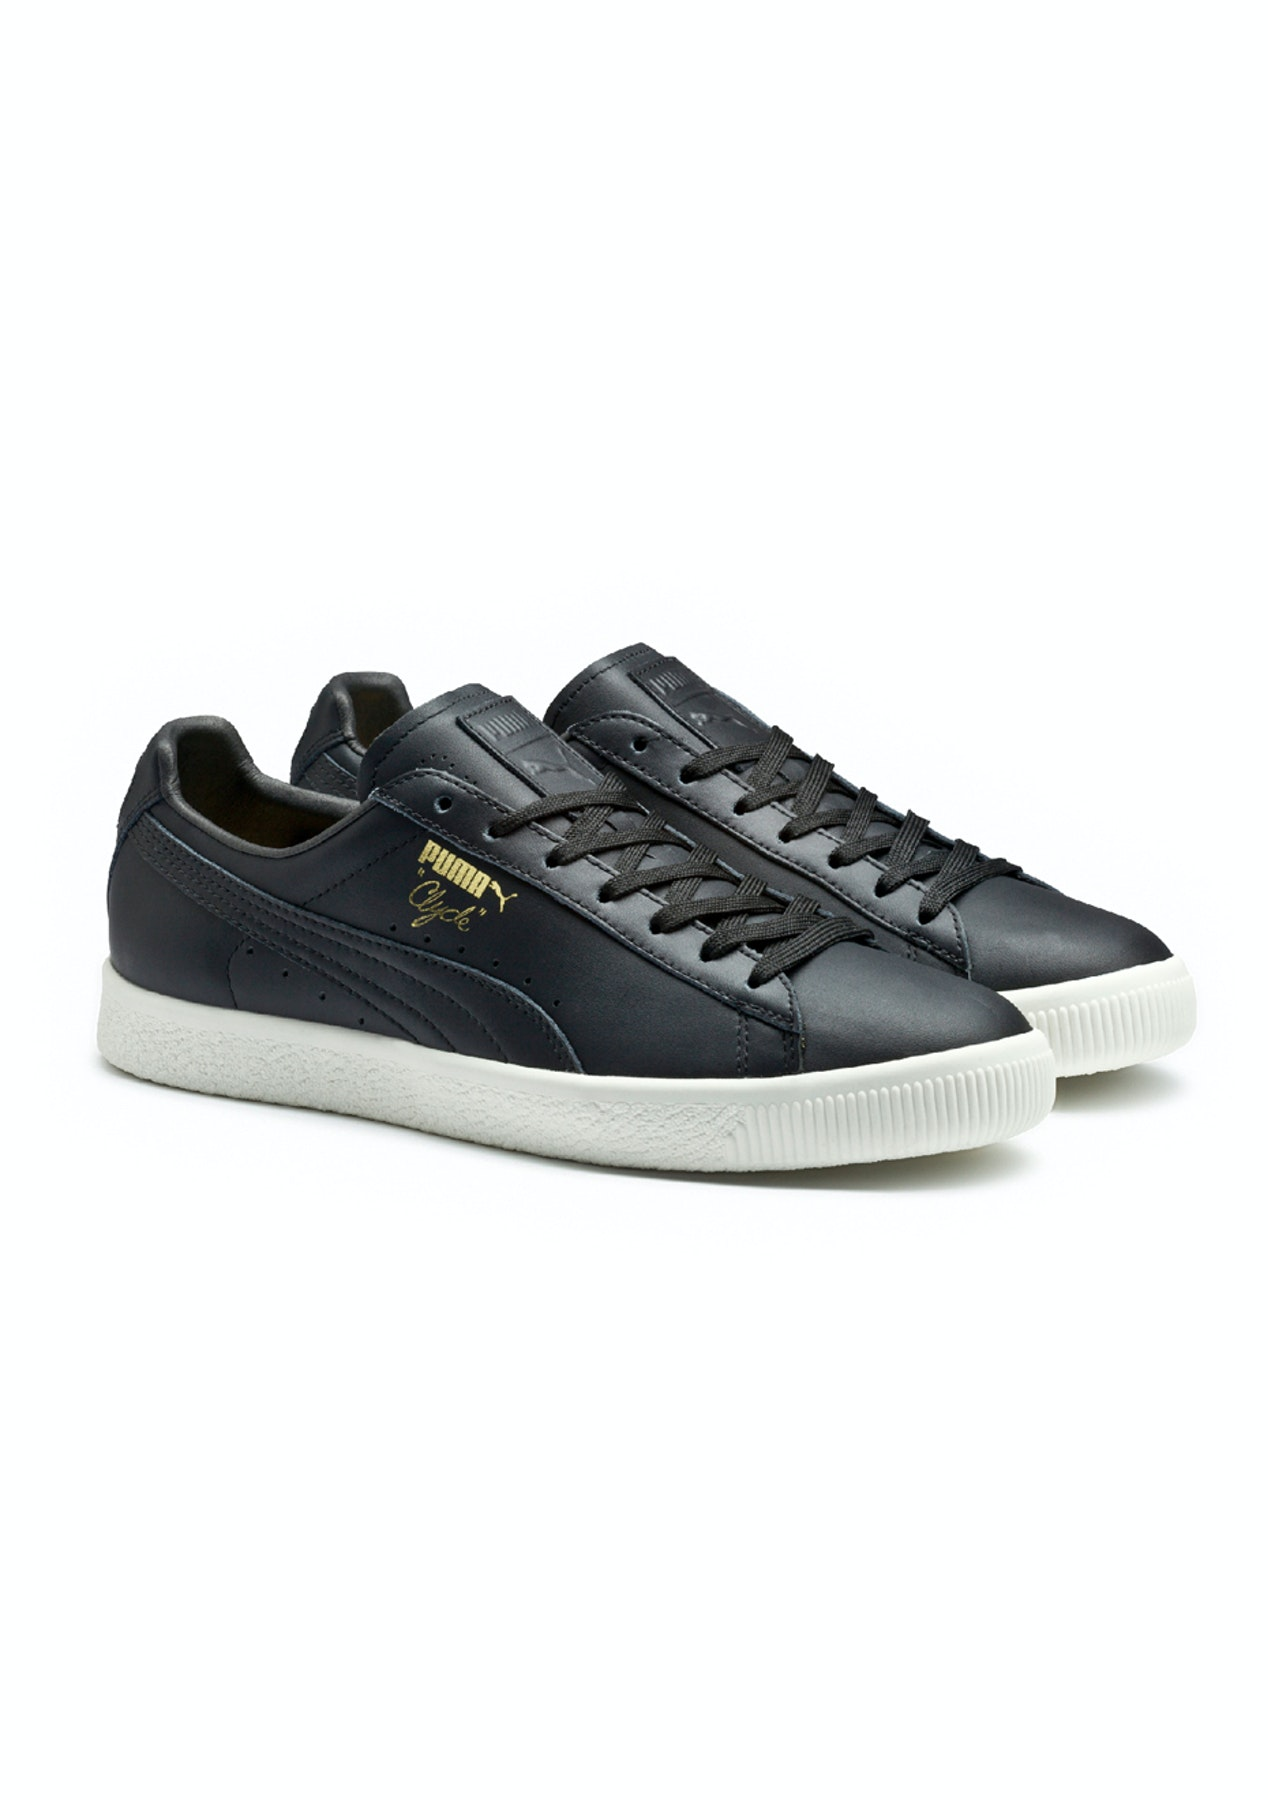 3aef35297c1 Puma Mens - Clyde Natural - Black - Free   Fast Shipping Shoe Sale - Onceit